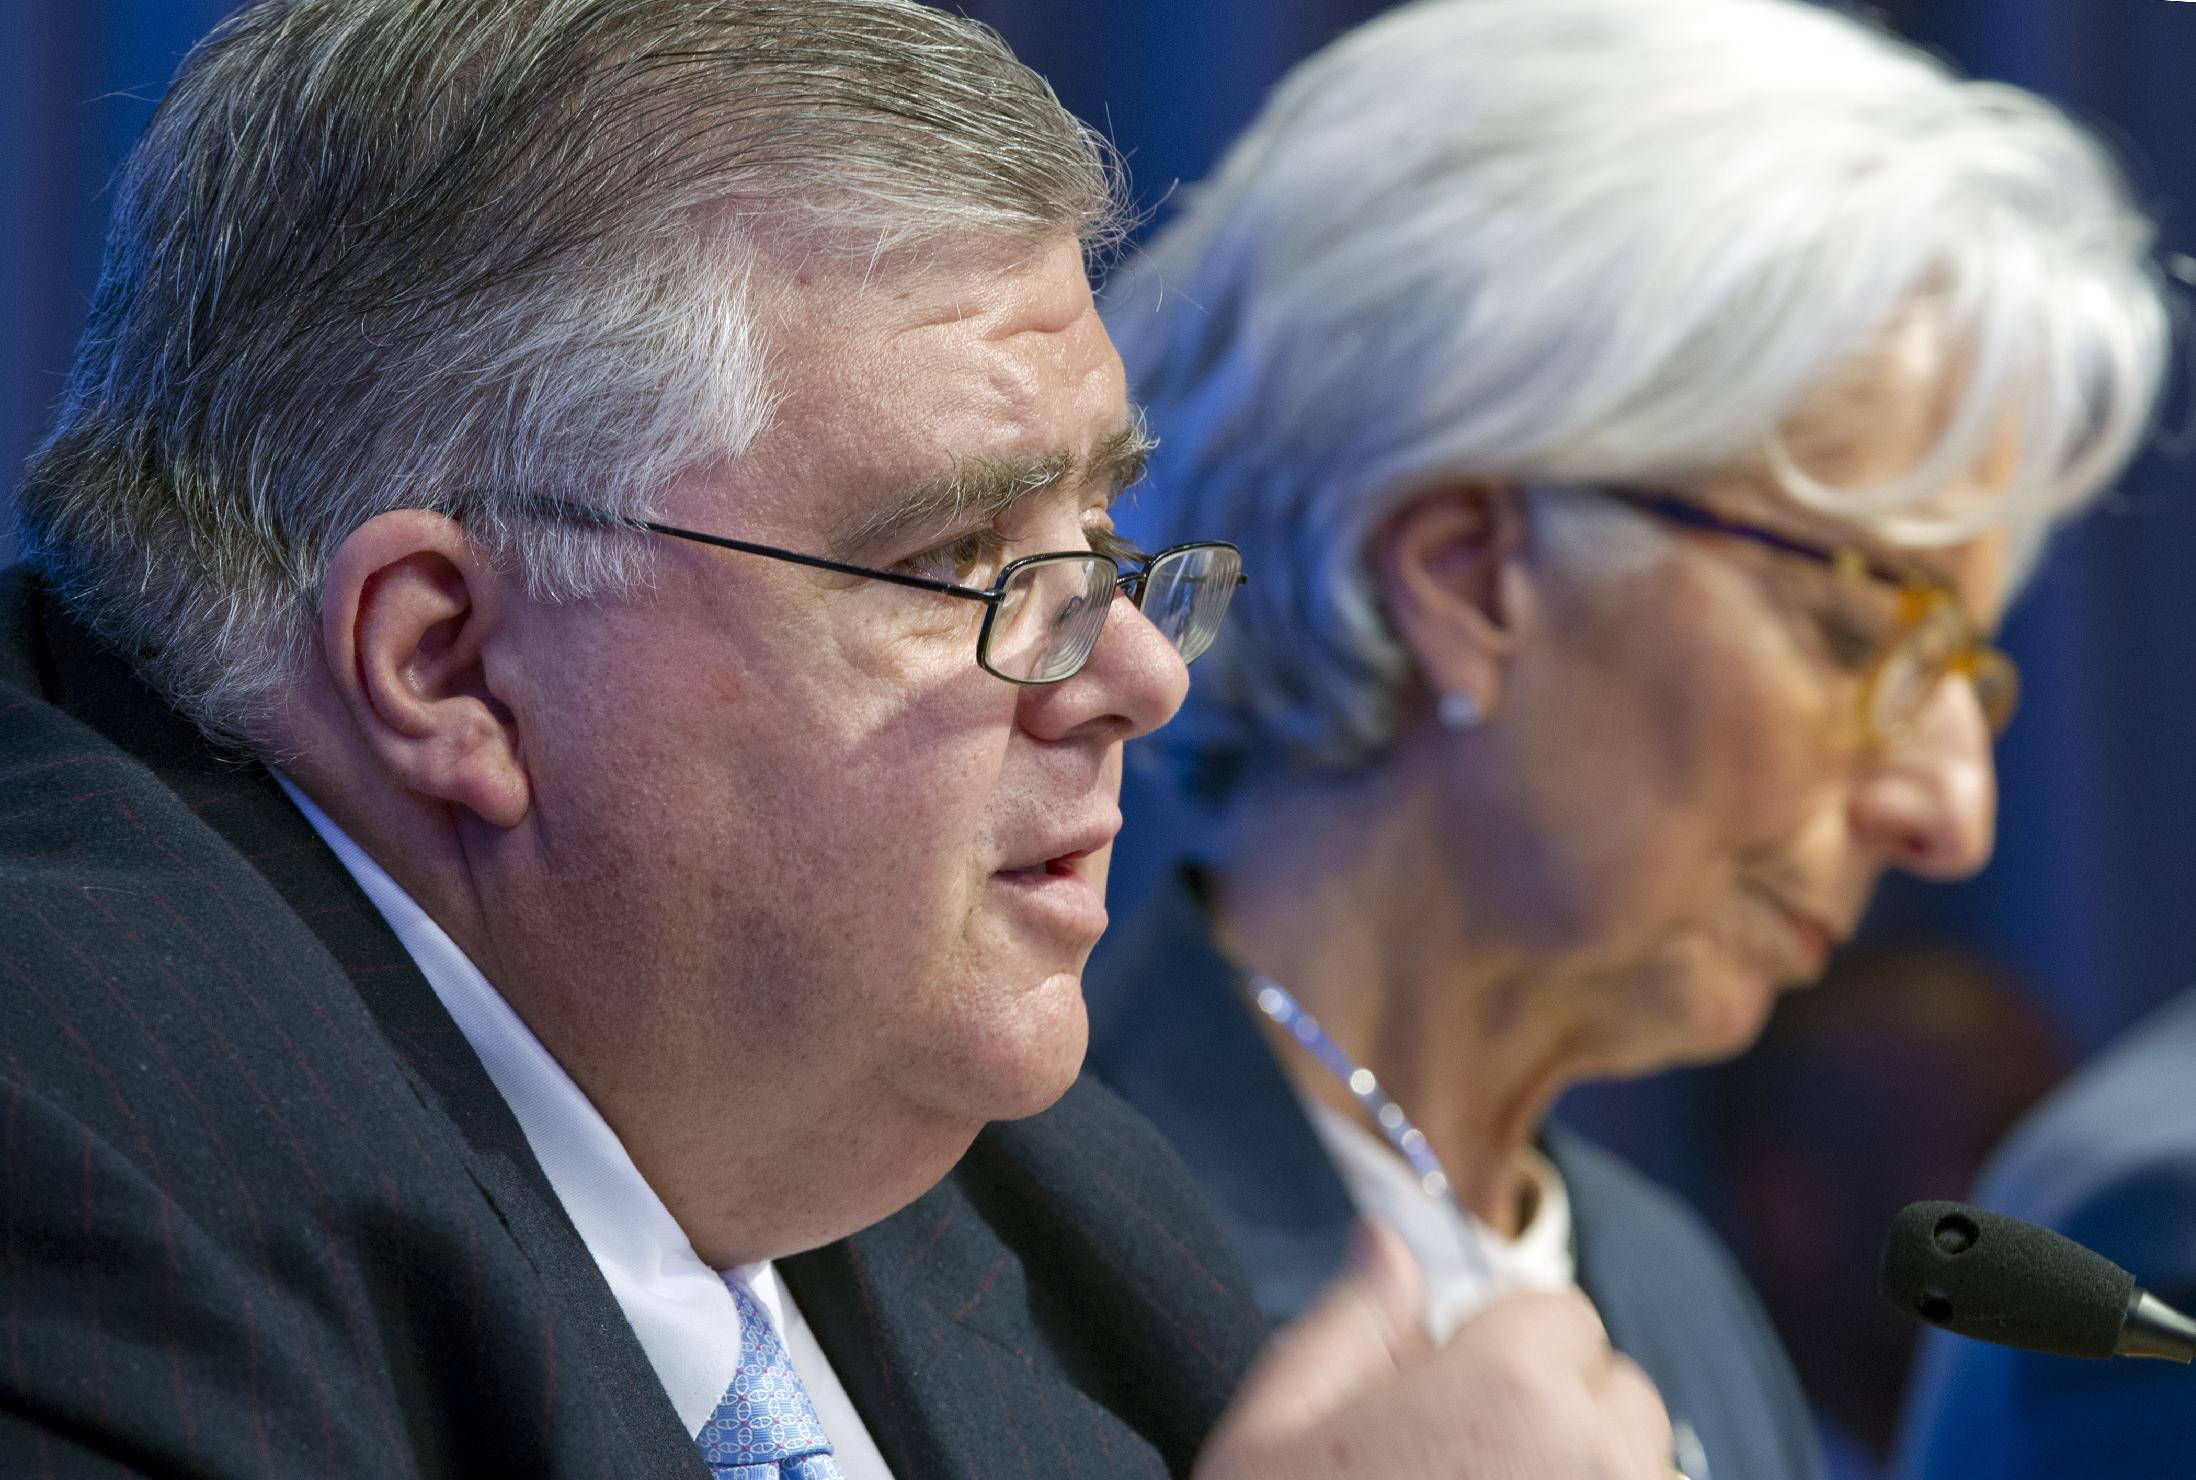 World finance leaders see threats ahead for global economy